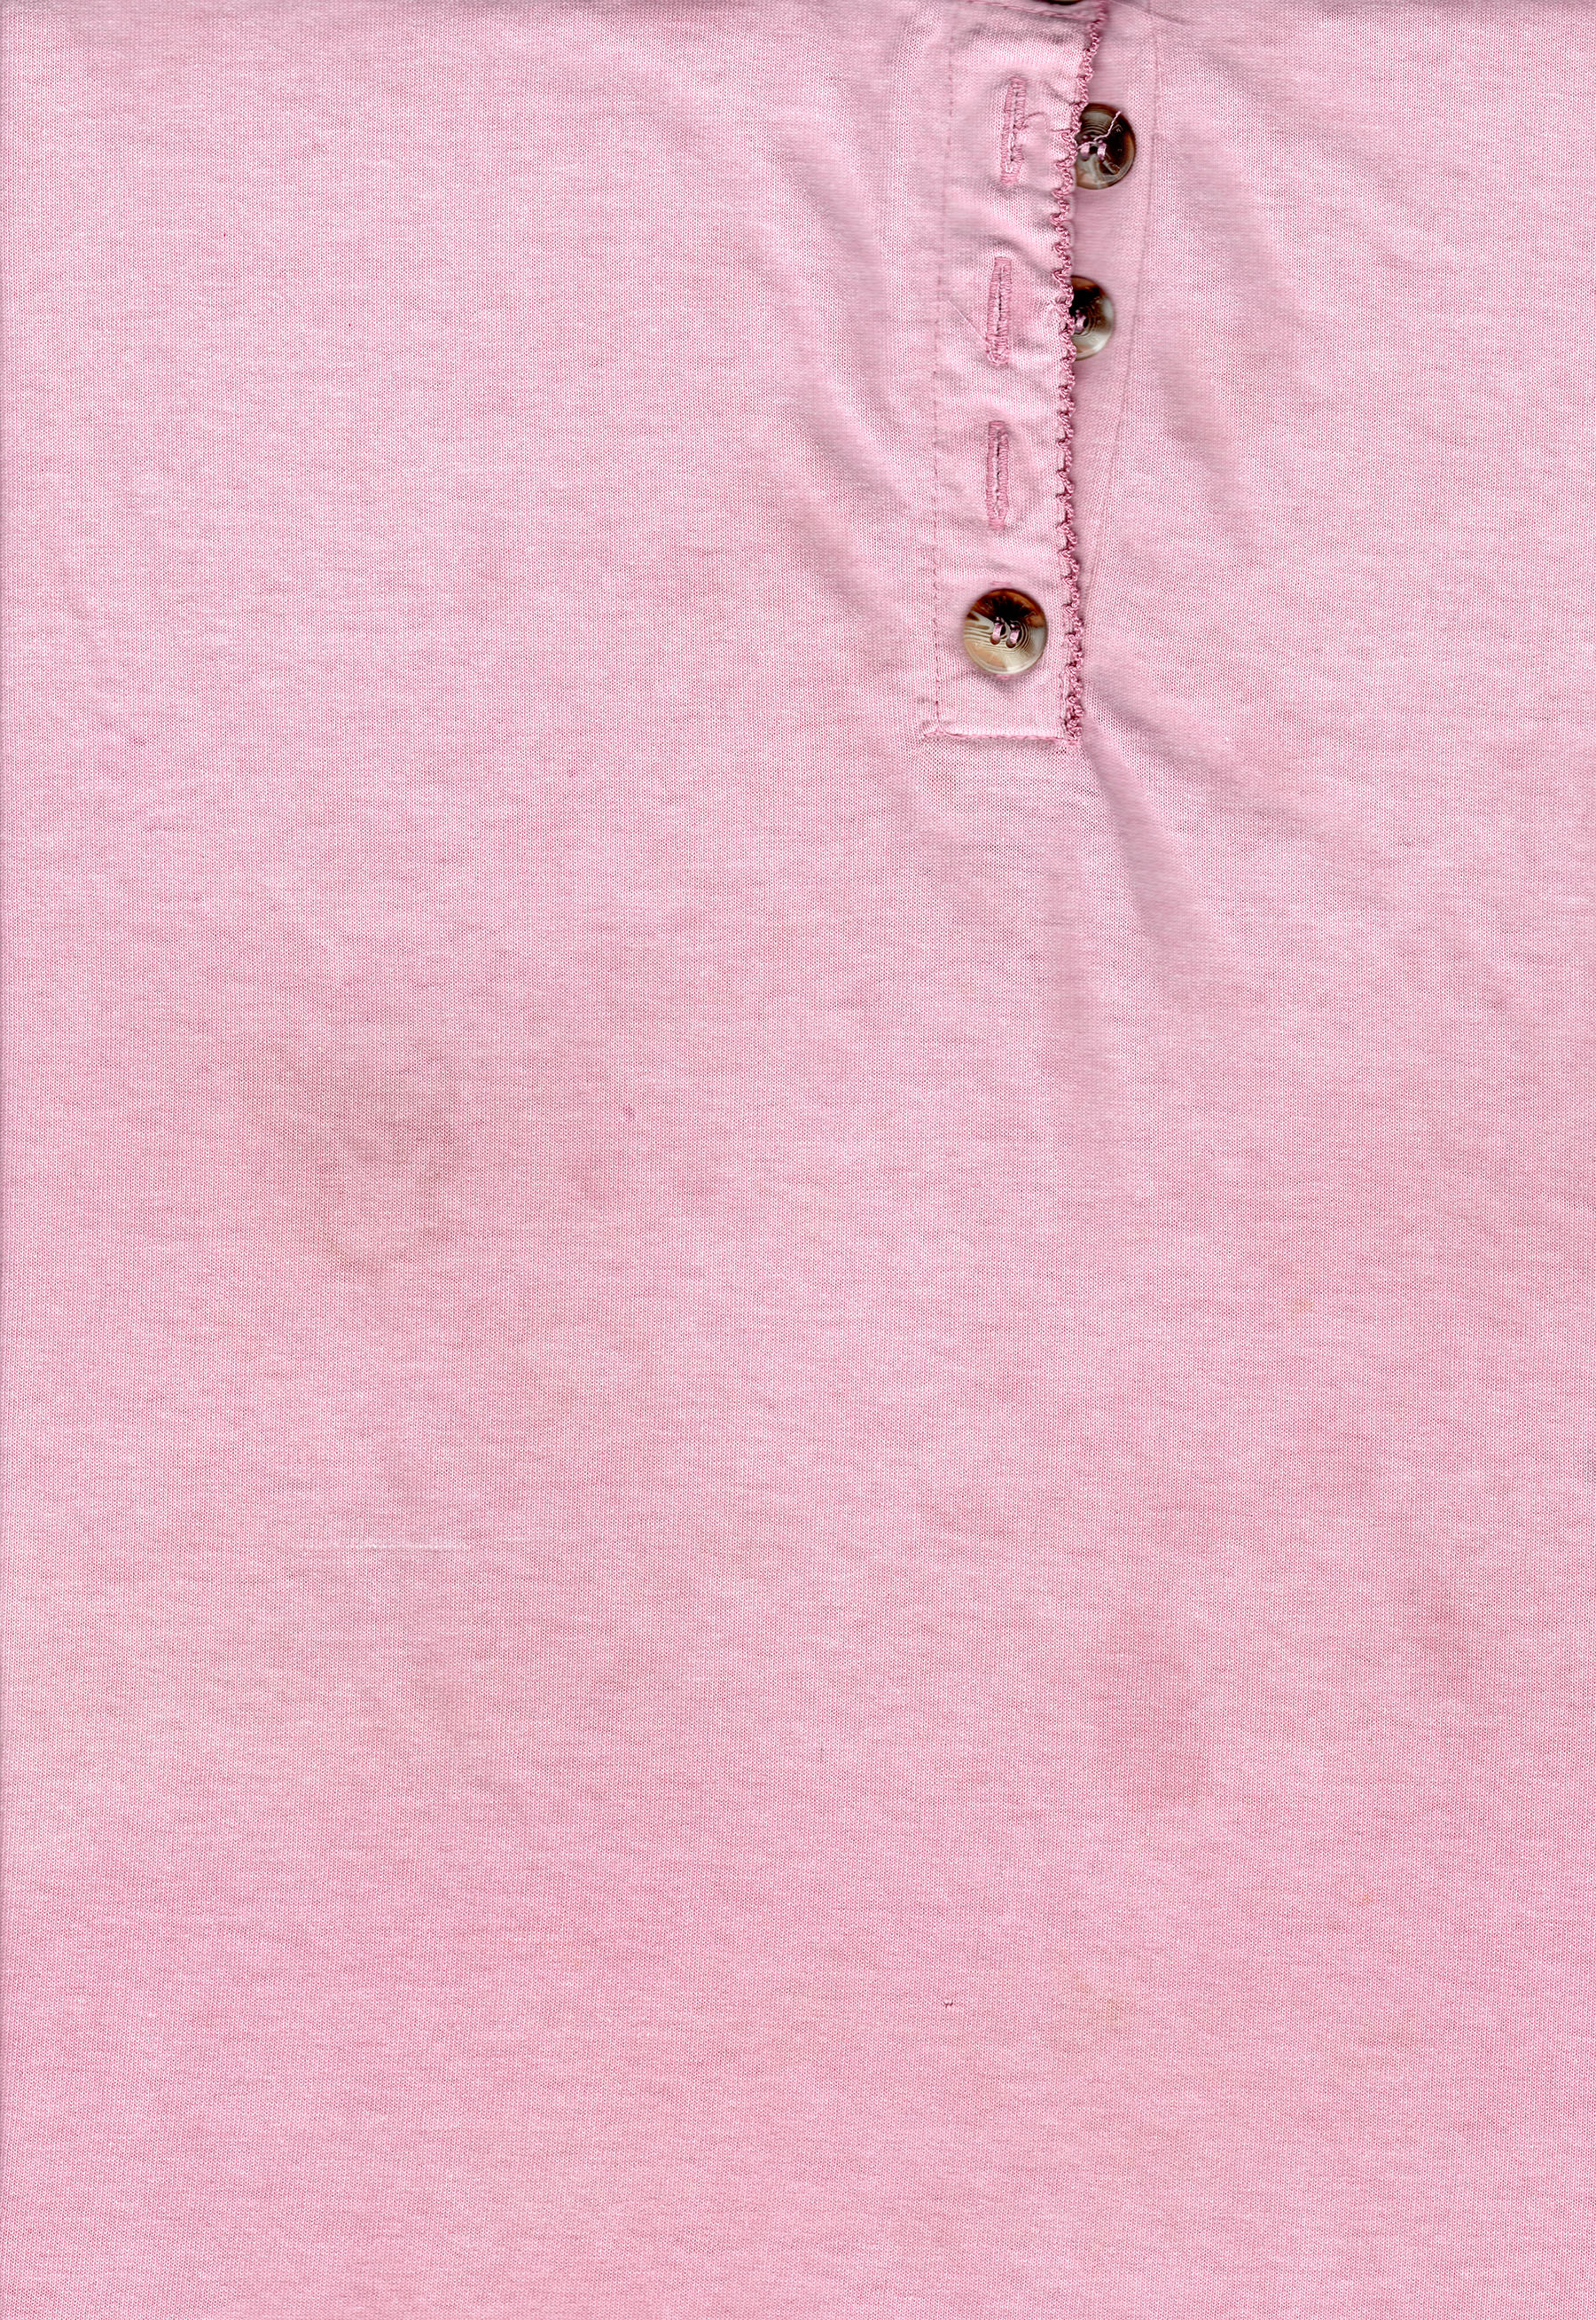 Stained Shirt No. 7